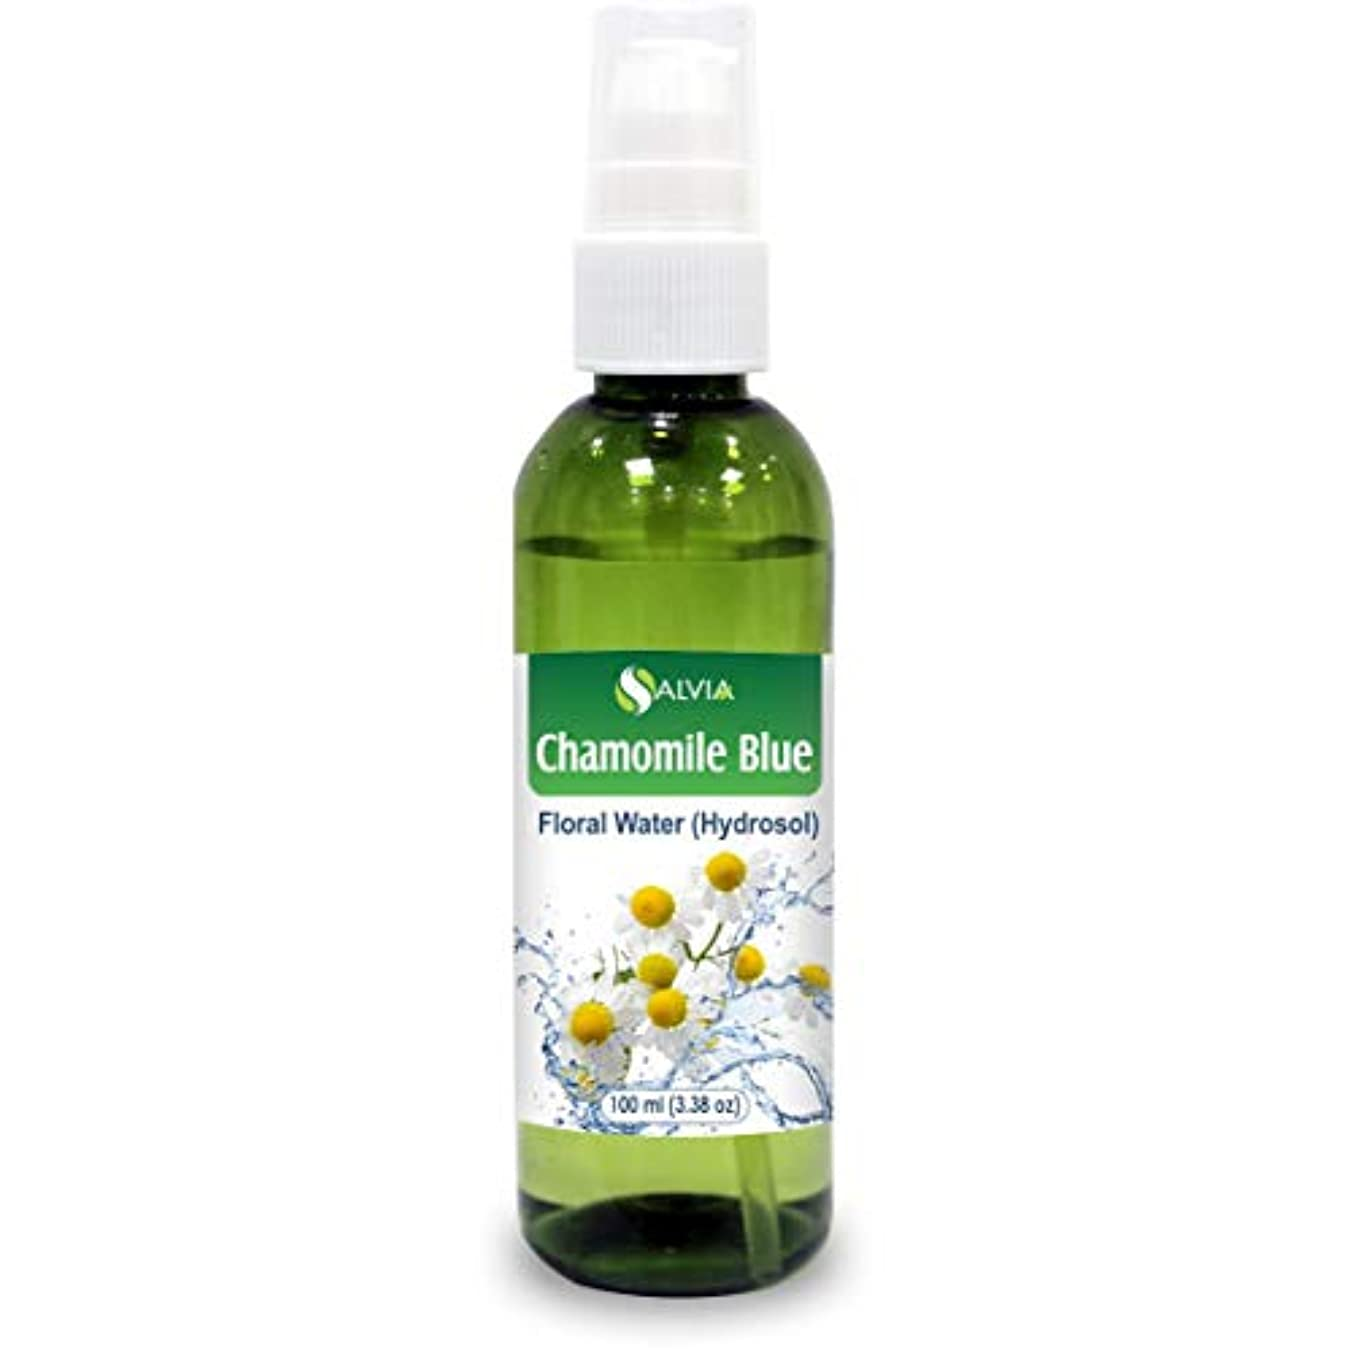 干渉ヒューズいろいろChamomile Oil, Blue Floral Water 100ml (Hydrosol) 100% Pure And Natural